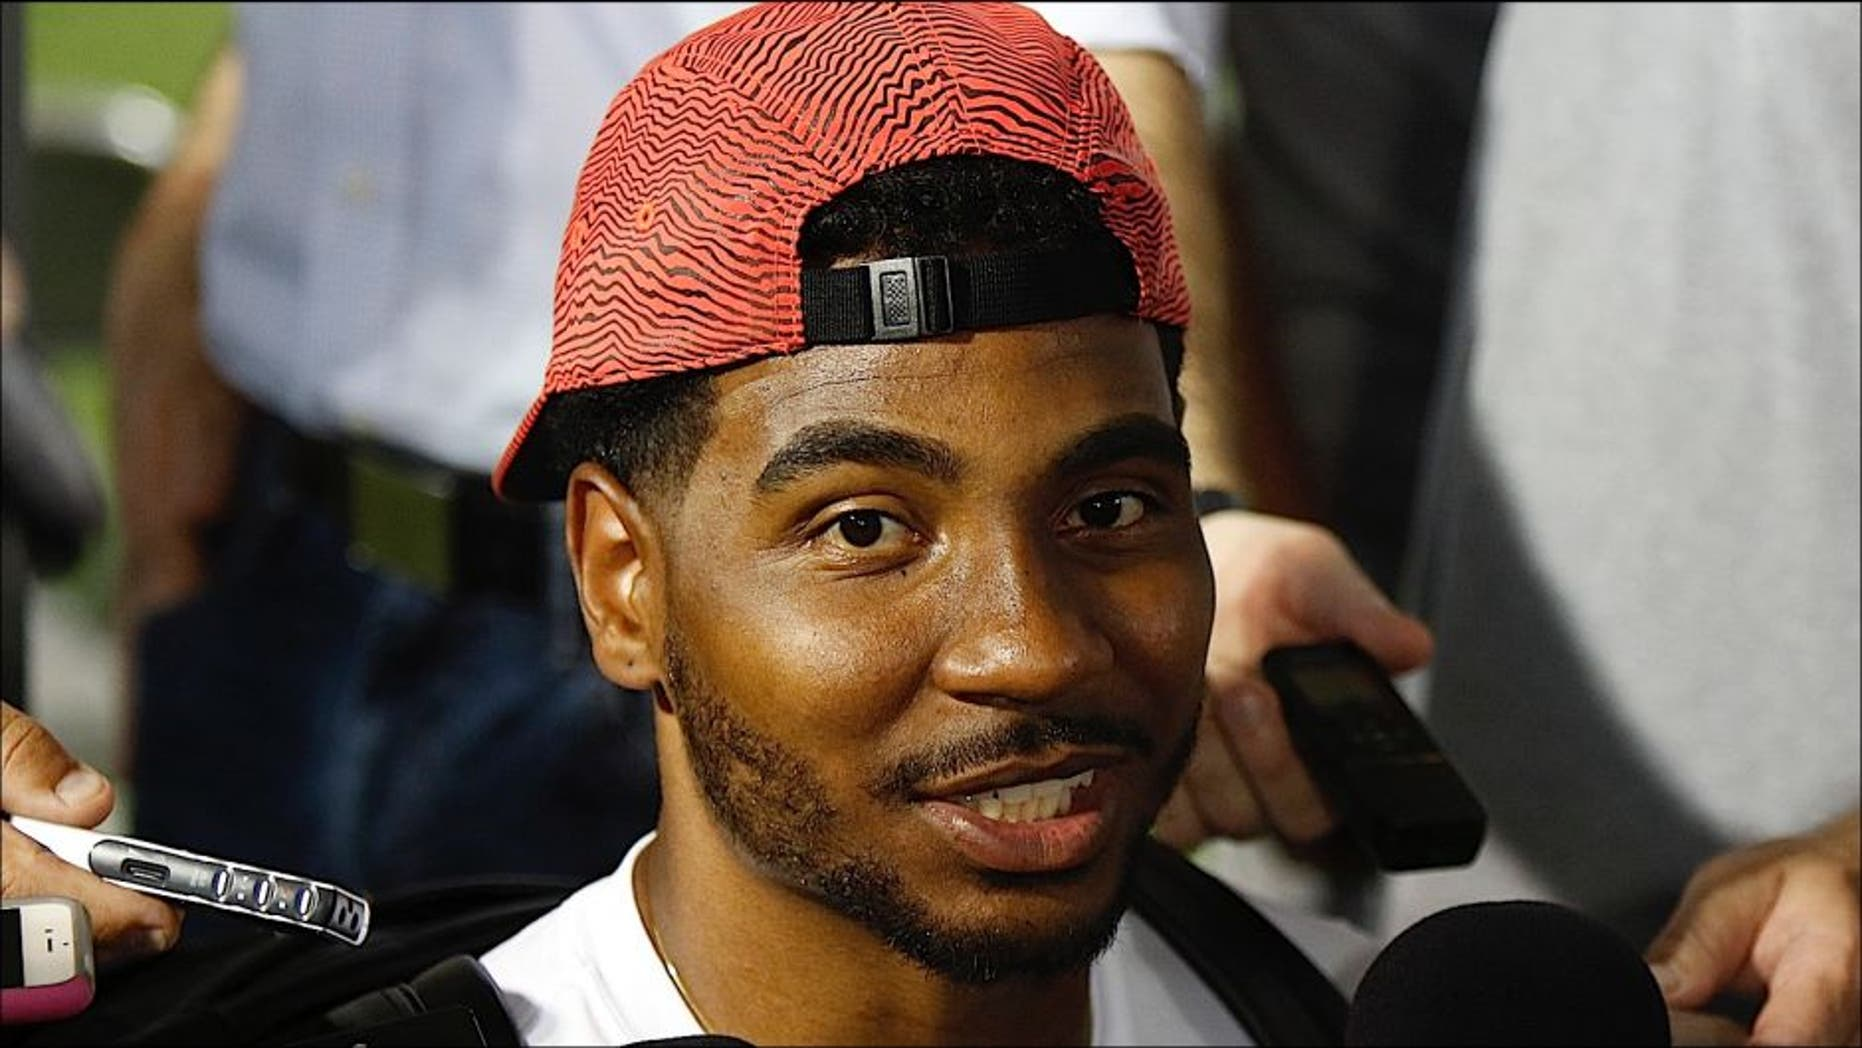 Former Ohio State quarterback turned wide receiver Braxton Miller speaks to reporters during the university's NCAA college football media day in Columbus, Ohio, Sunday, Aug. 16, 2015. (AP Photo/Paul Vernon)